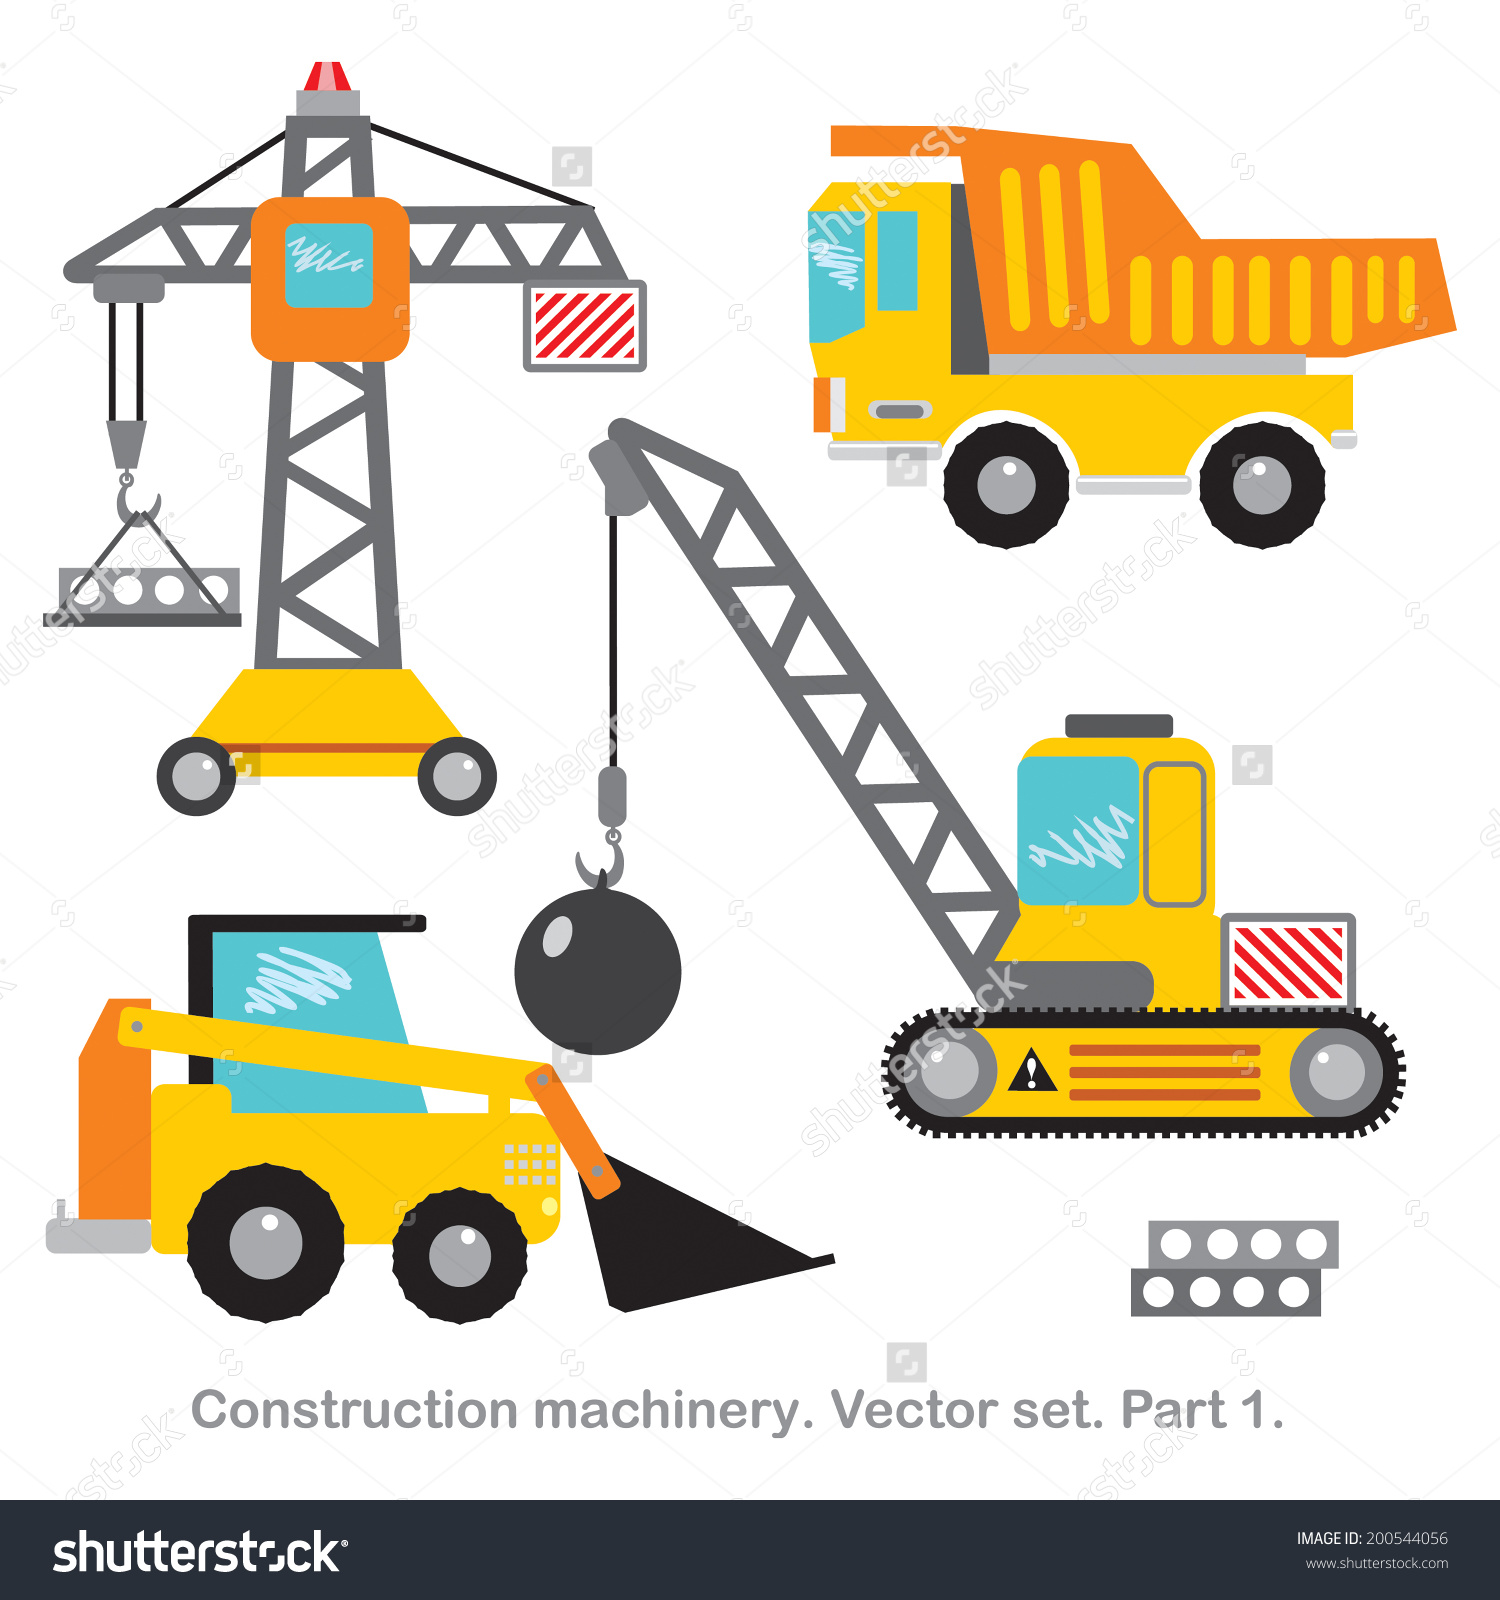 Vector Set Clip Art Construction Machinerypart Stock Vector.